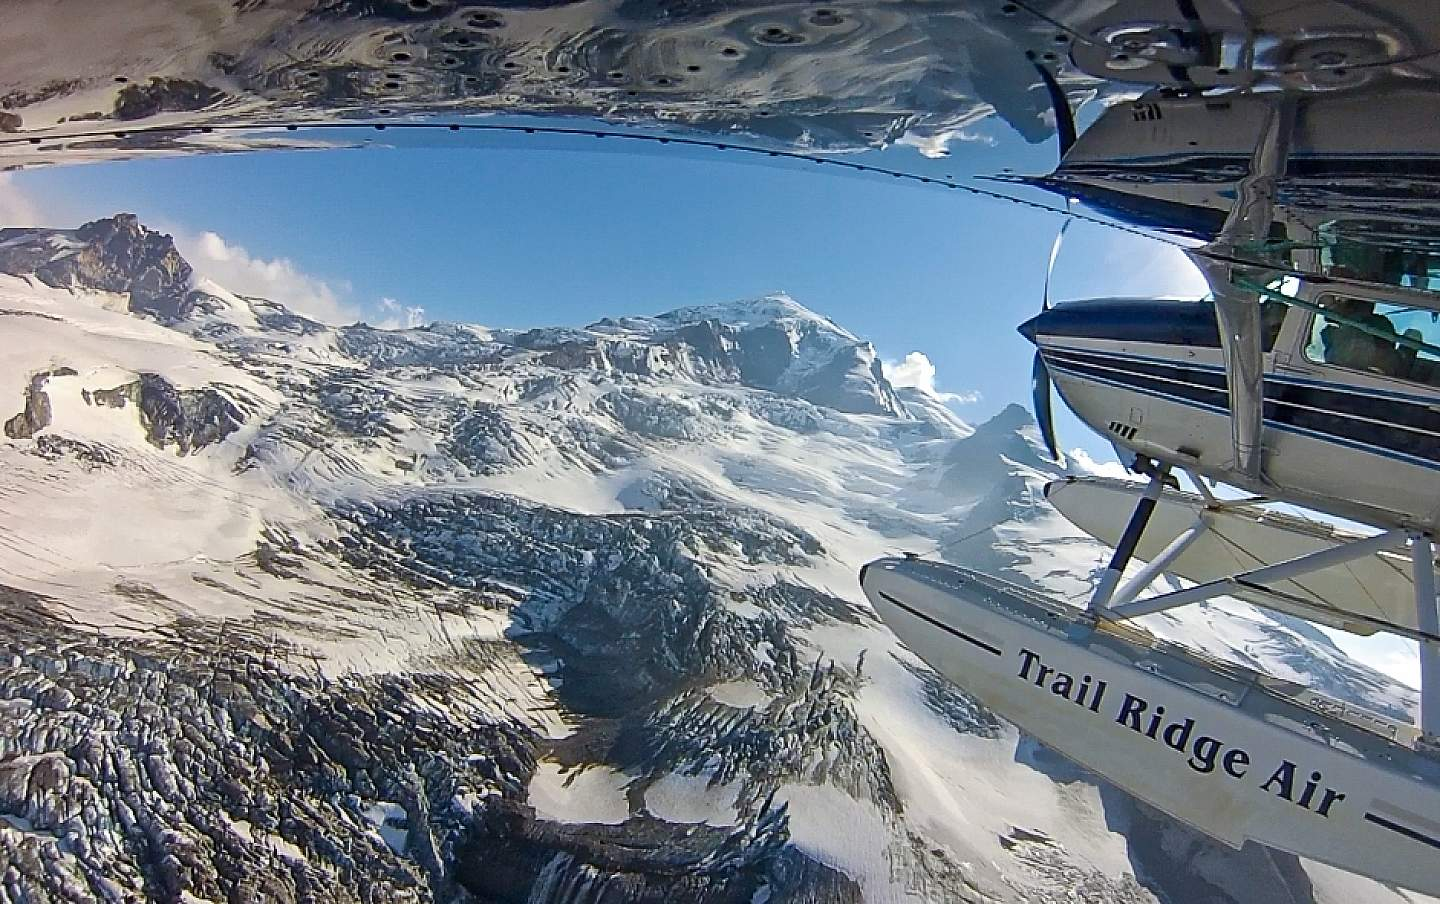 A view from under the wing of a bush plane as it flies above snow covered mountains.